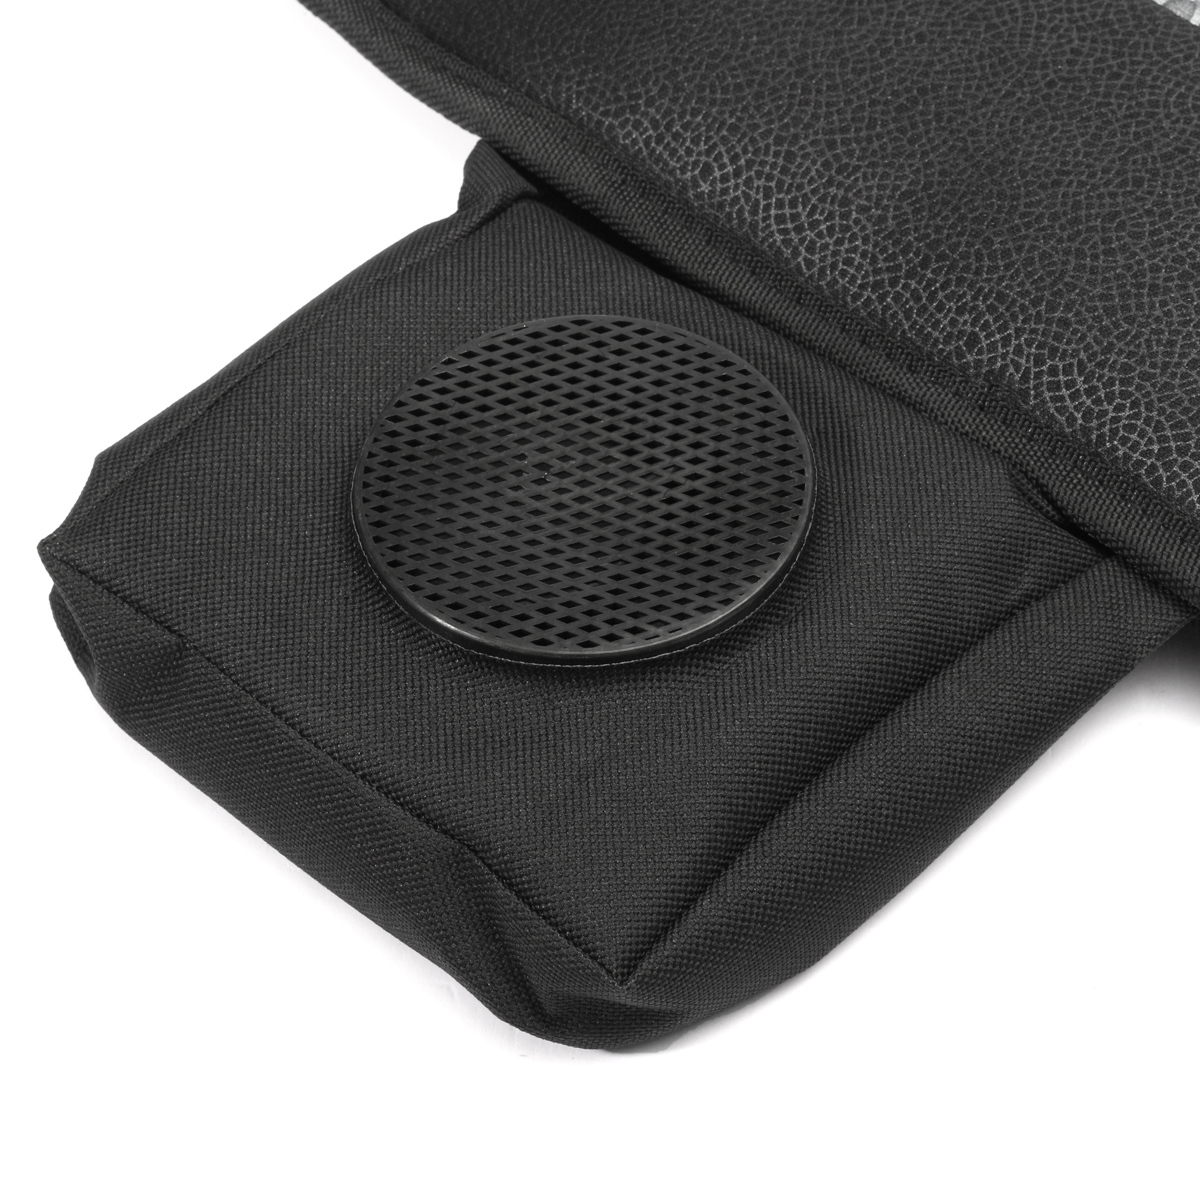 12v cooling car auto truck seat cushion cover fan air. Black Bedroom Furniture Sets. Home Design Ideas